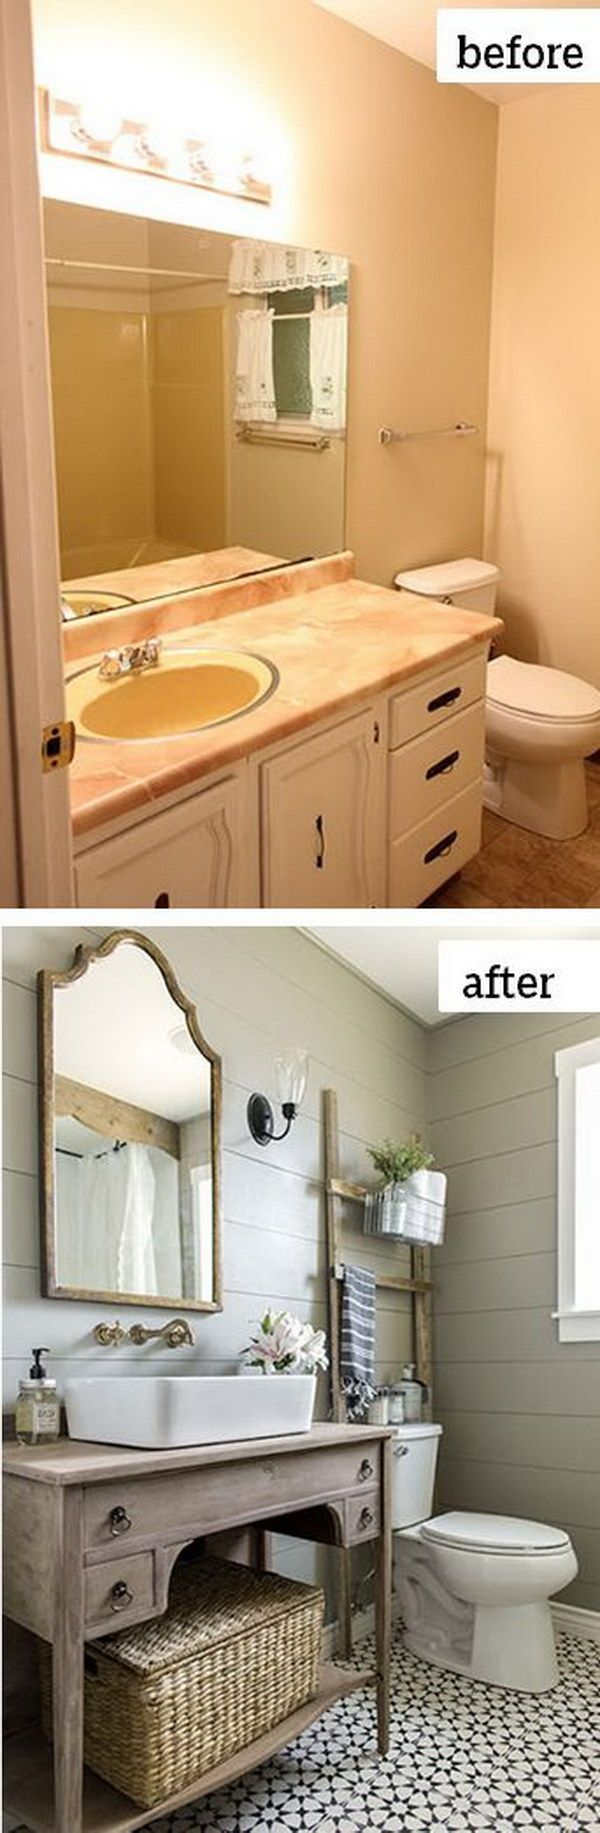 Remodeling Bathroom Help 50 best before & after: bathroom remodeling projects images on